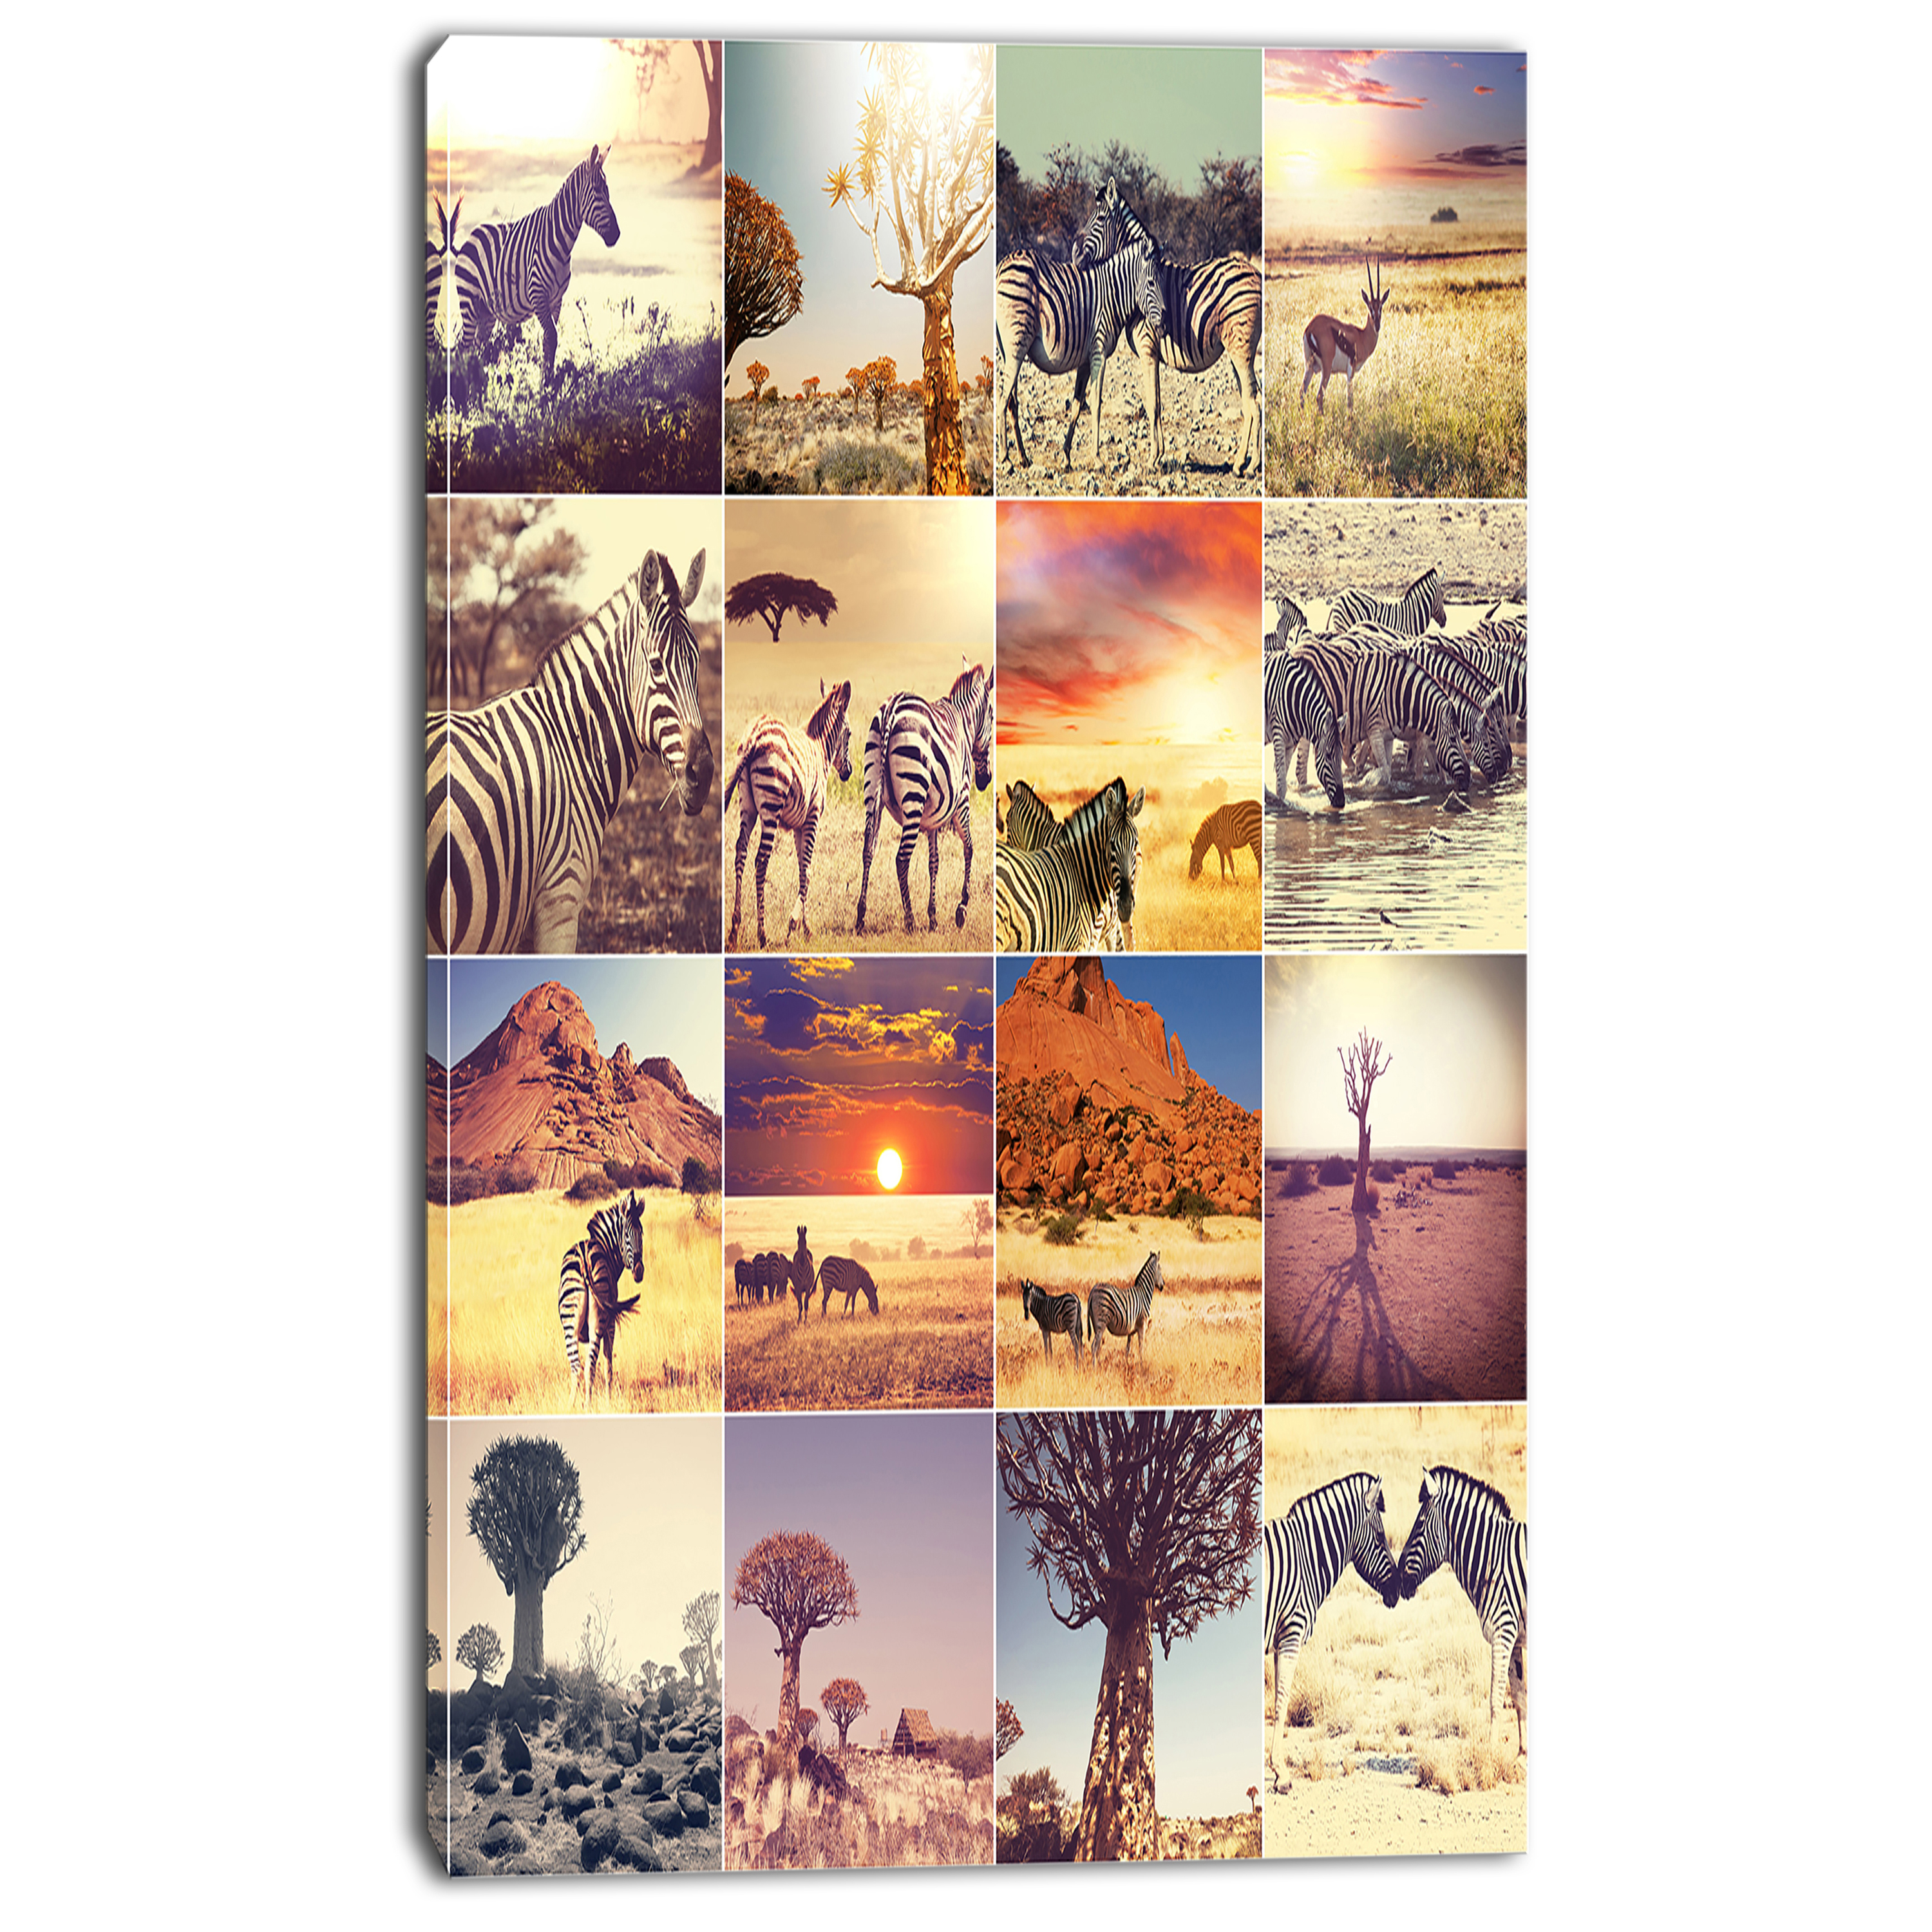 African Wildlife And Nature Collage